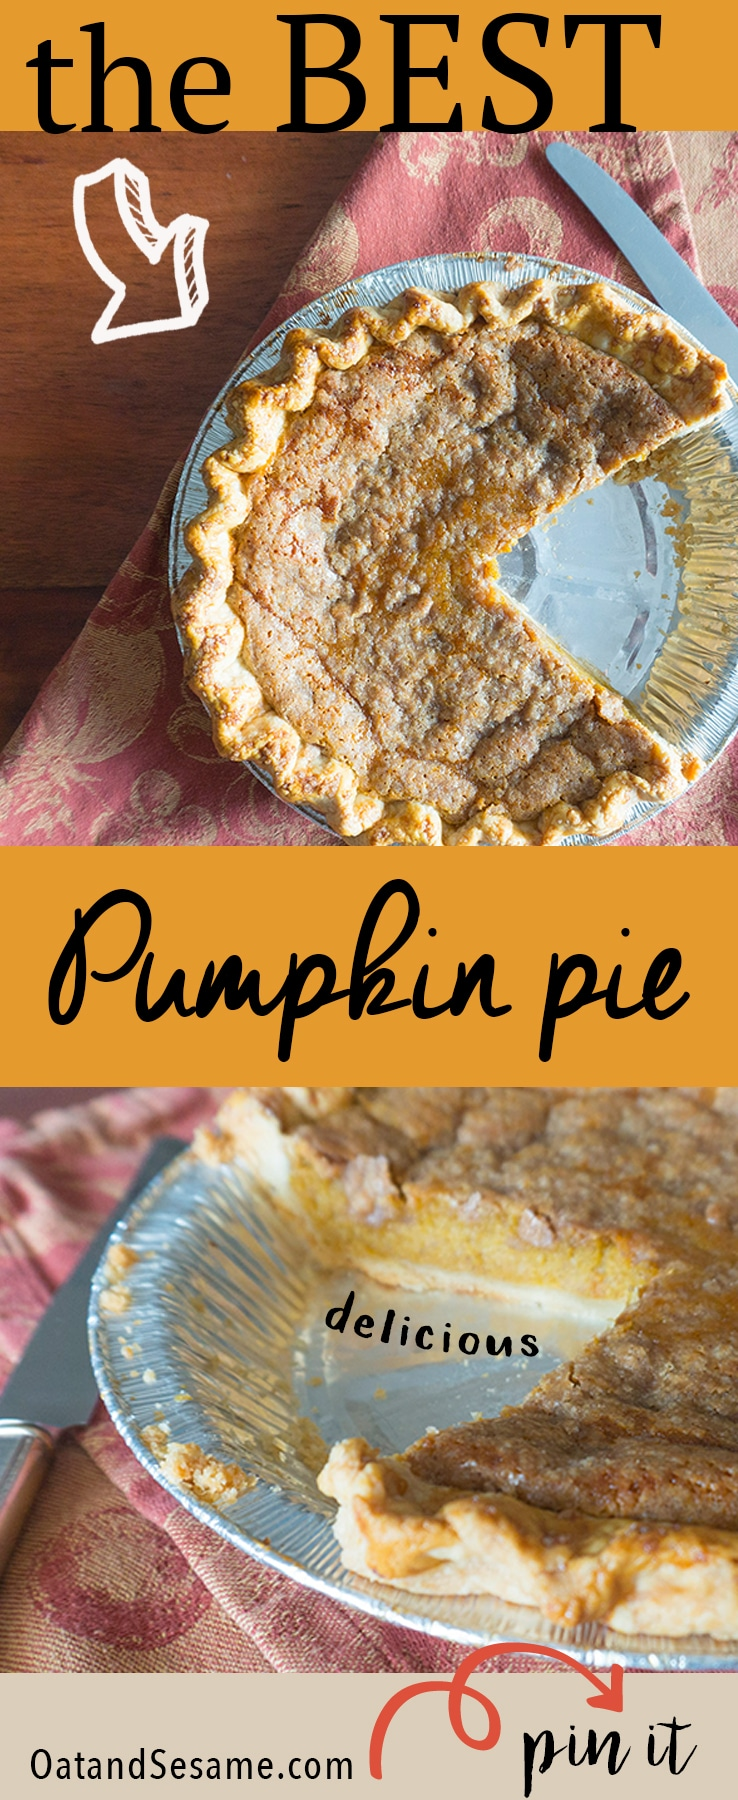 Your New FAVORITE PUMPKIN PIE - straight from baking class, comes this amazing pie that I just couldn't stop eating. Creamy and Perfectly Spiced then I opted to add a crumble top too!   #FALL   #BAKING   #THANKSGIVING   #PUMPKIN   #PIE   CRUST   #Recipes at OatandSesame.com